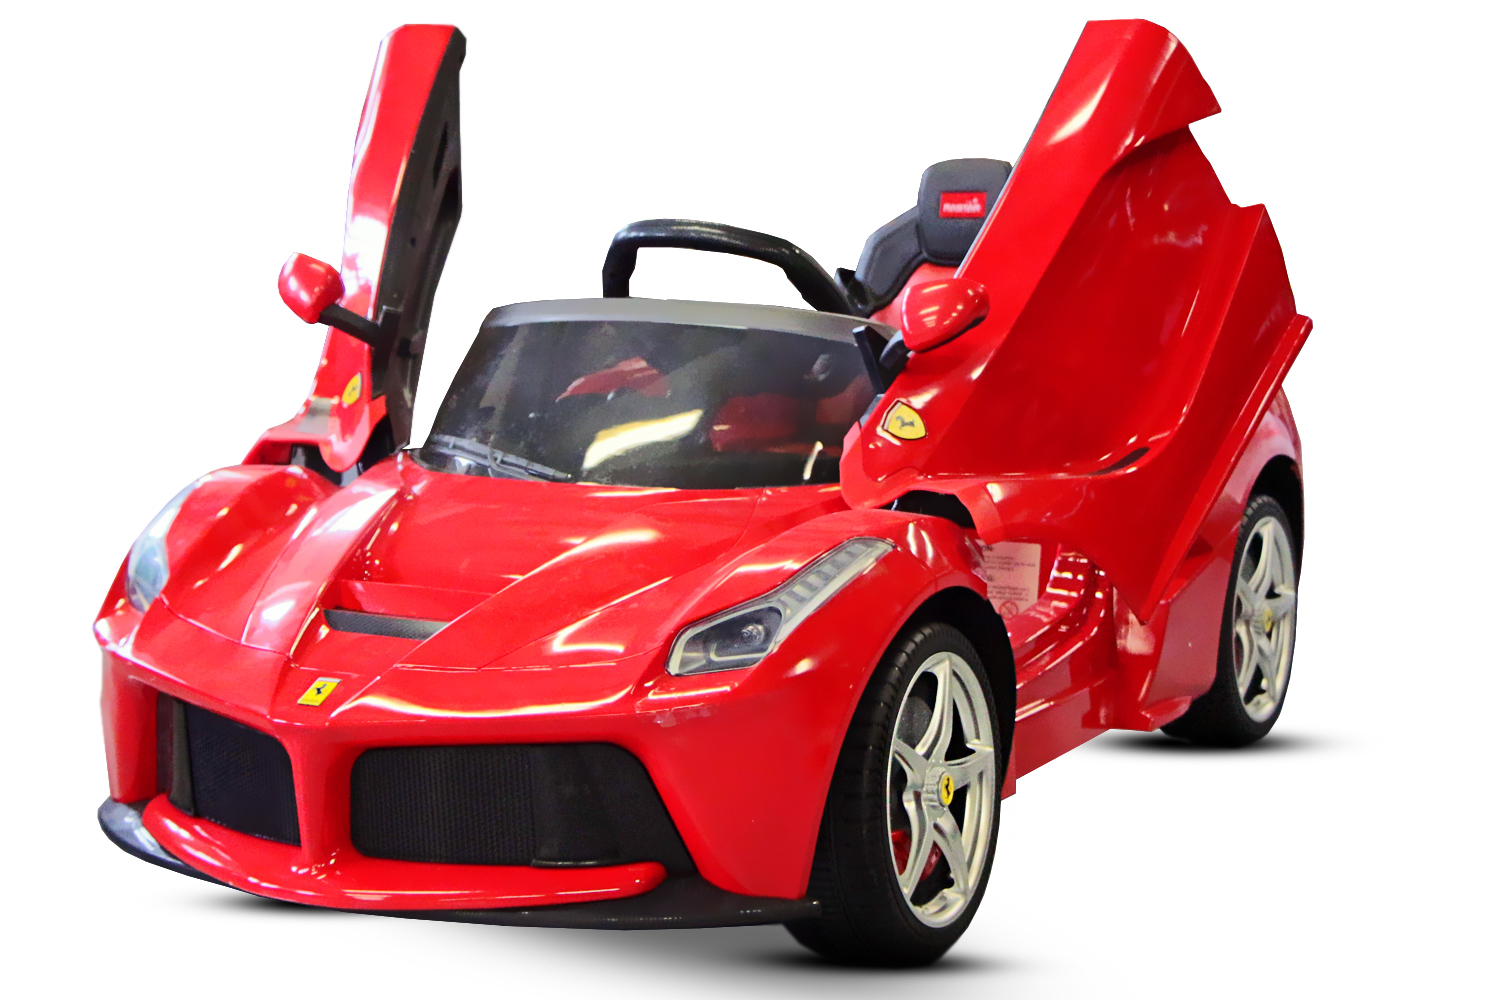 kidcars kinder elektroautos mit akku lizenz kinder elektro auto ferrari laferrari 2x 25w 12v rot. Black Bedroom Furniture Sets. Home Design Ideas